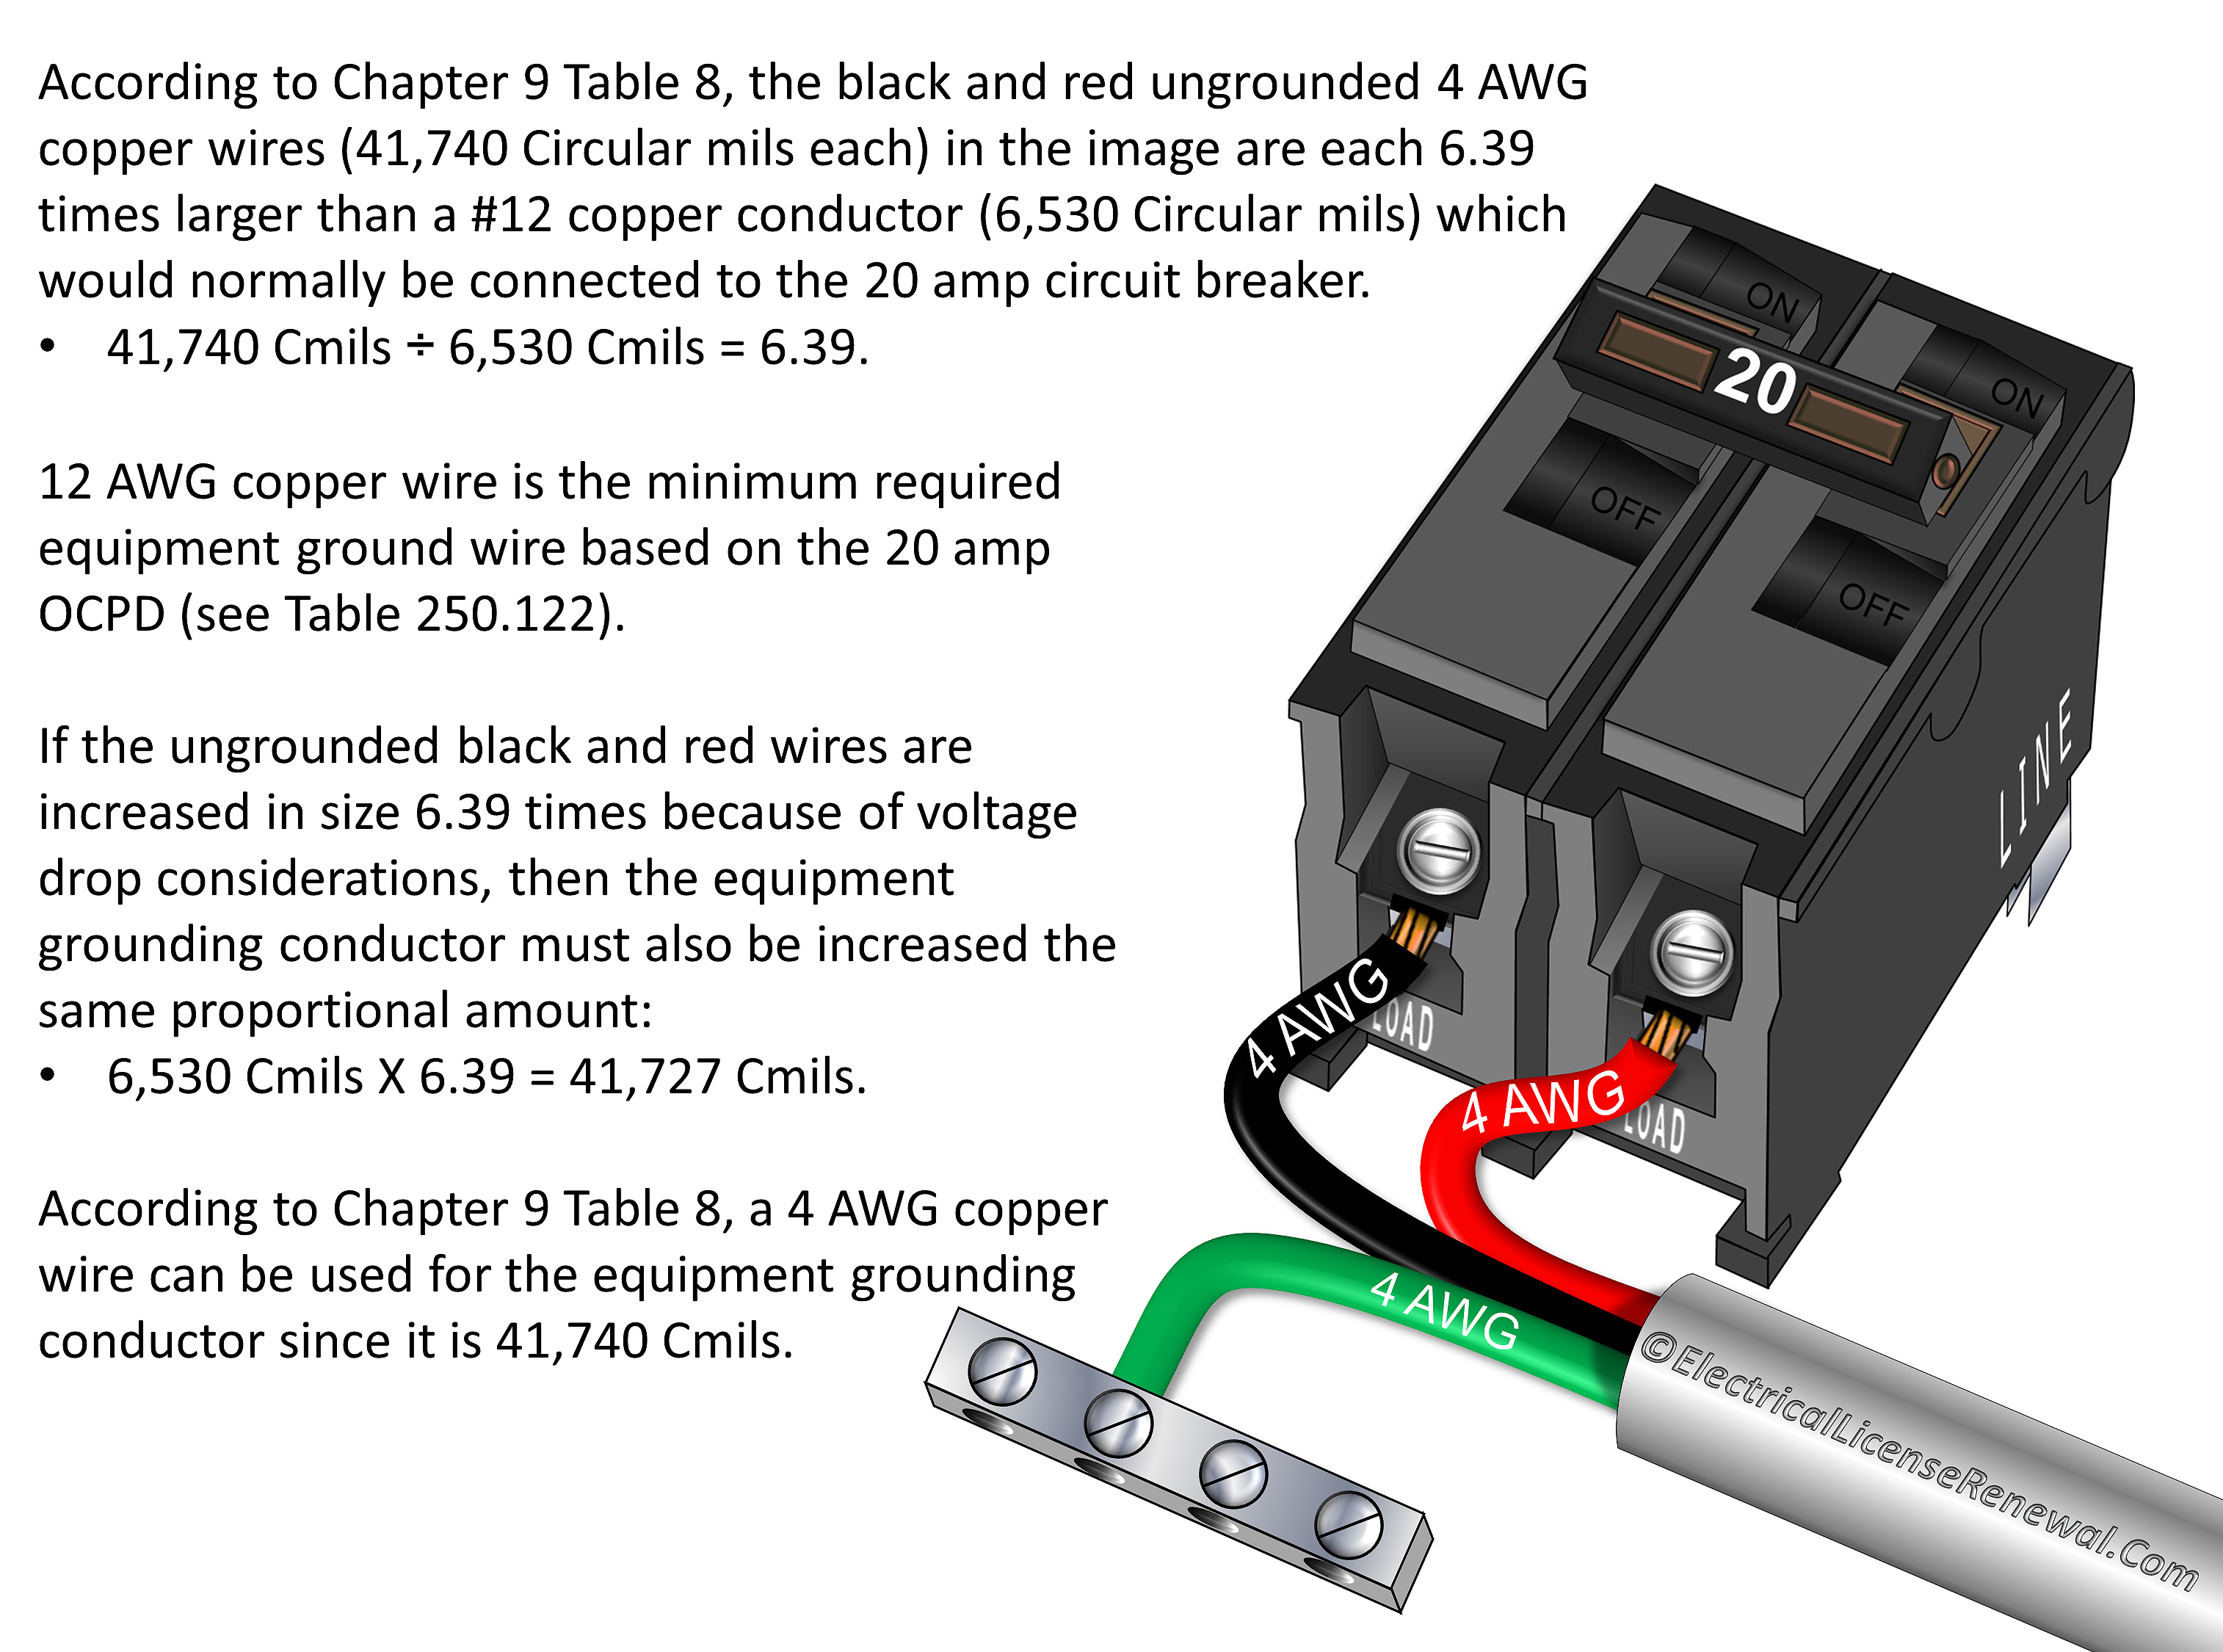 250122b size of equipment grounding conductors increased in size keyboard keysfo Choice Image